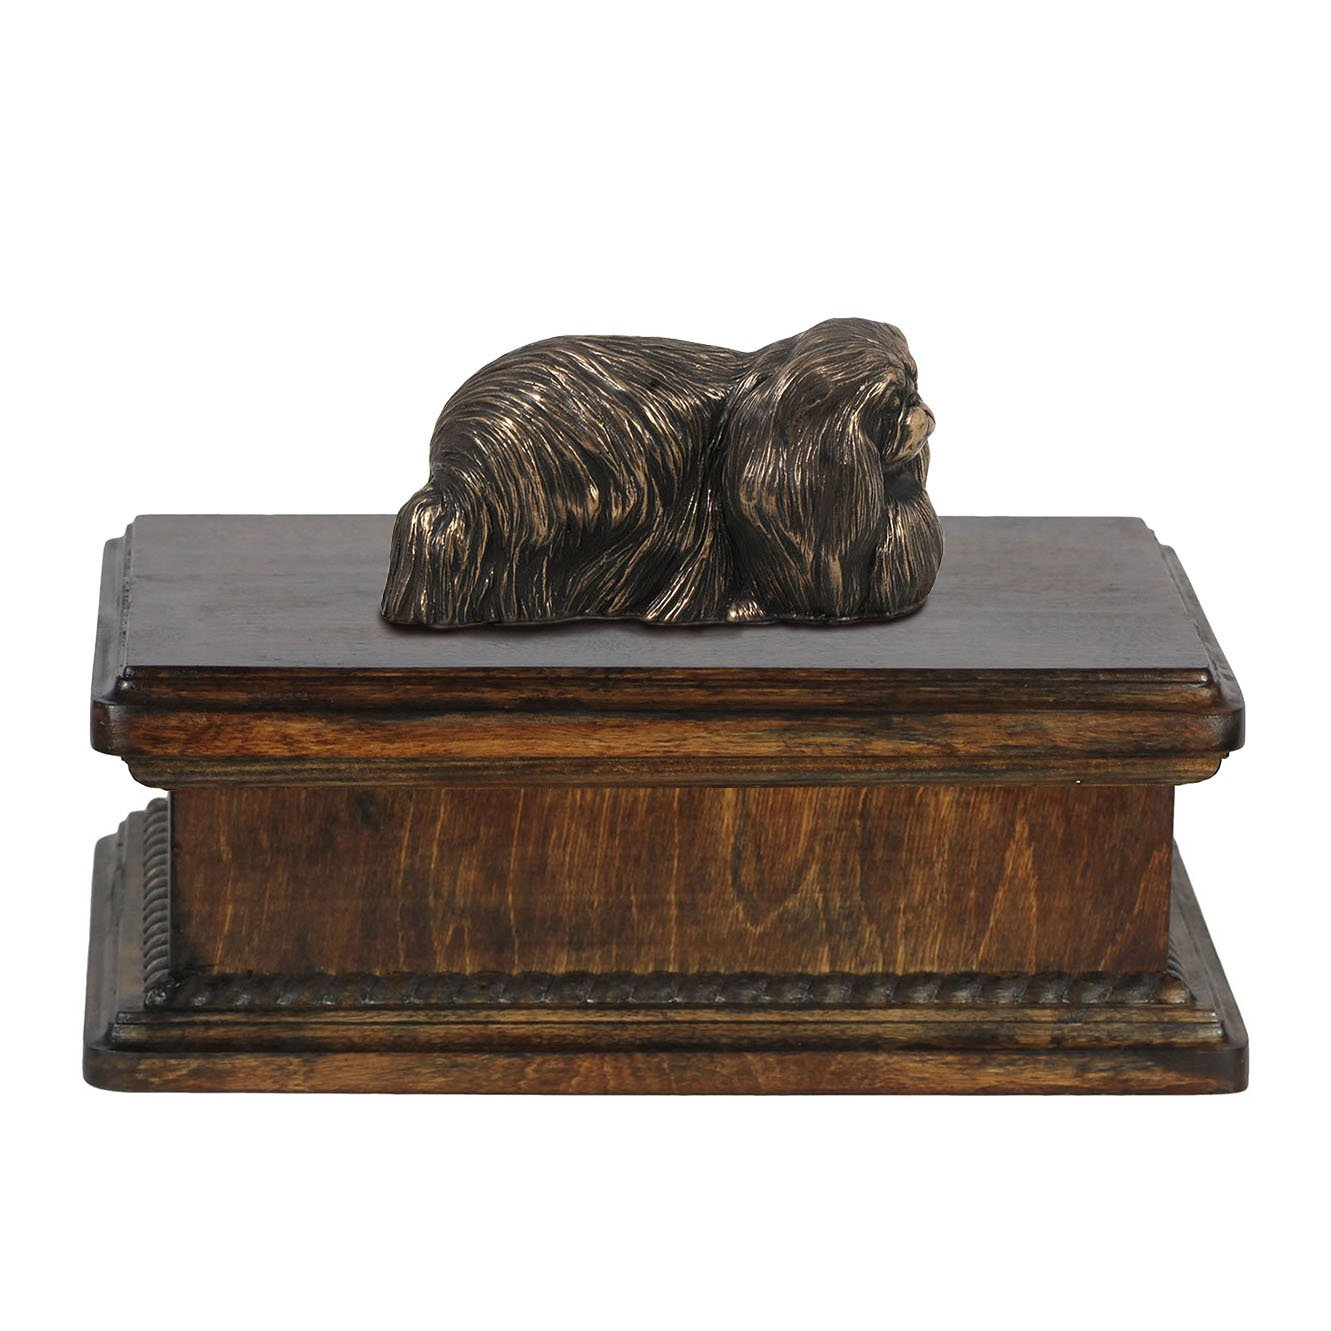 Pekingese, memorial, urn for dog's ashes, with dog statue, exclusive, ArtDog